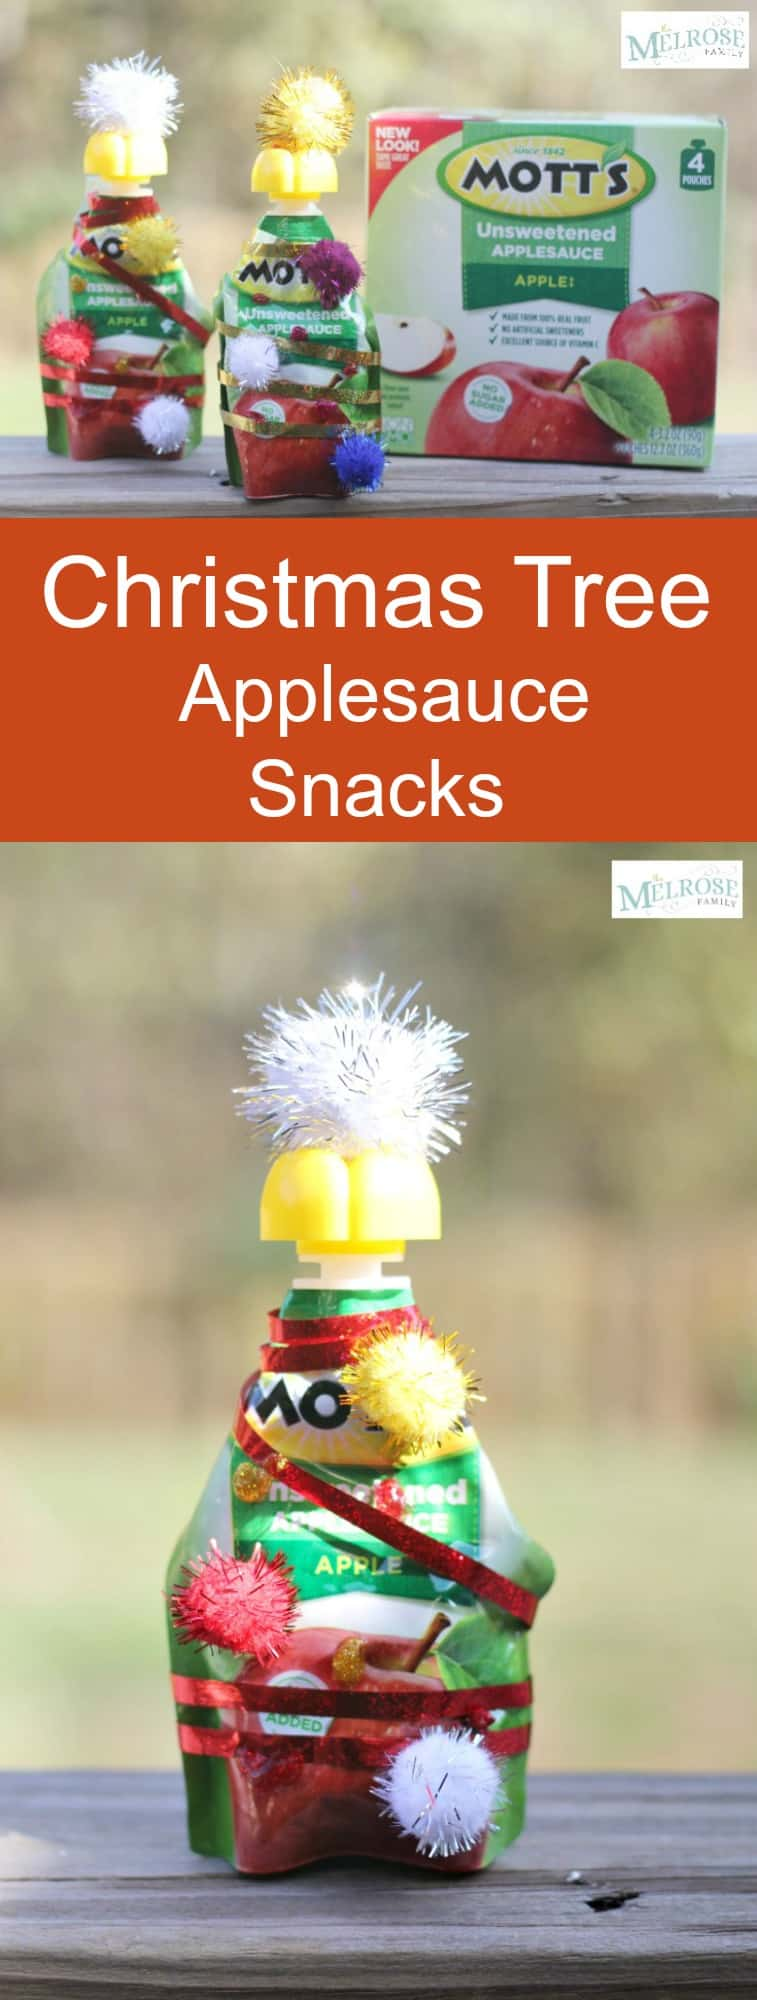 Christmas Tree Applesauce Snacks with @motts #ad #christmas2017 #classsnack